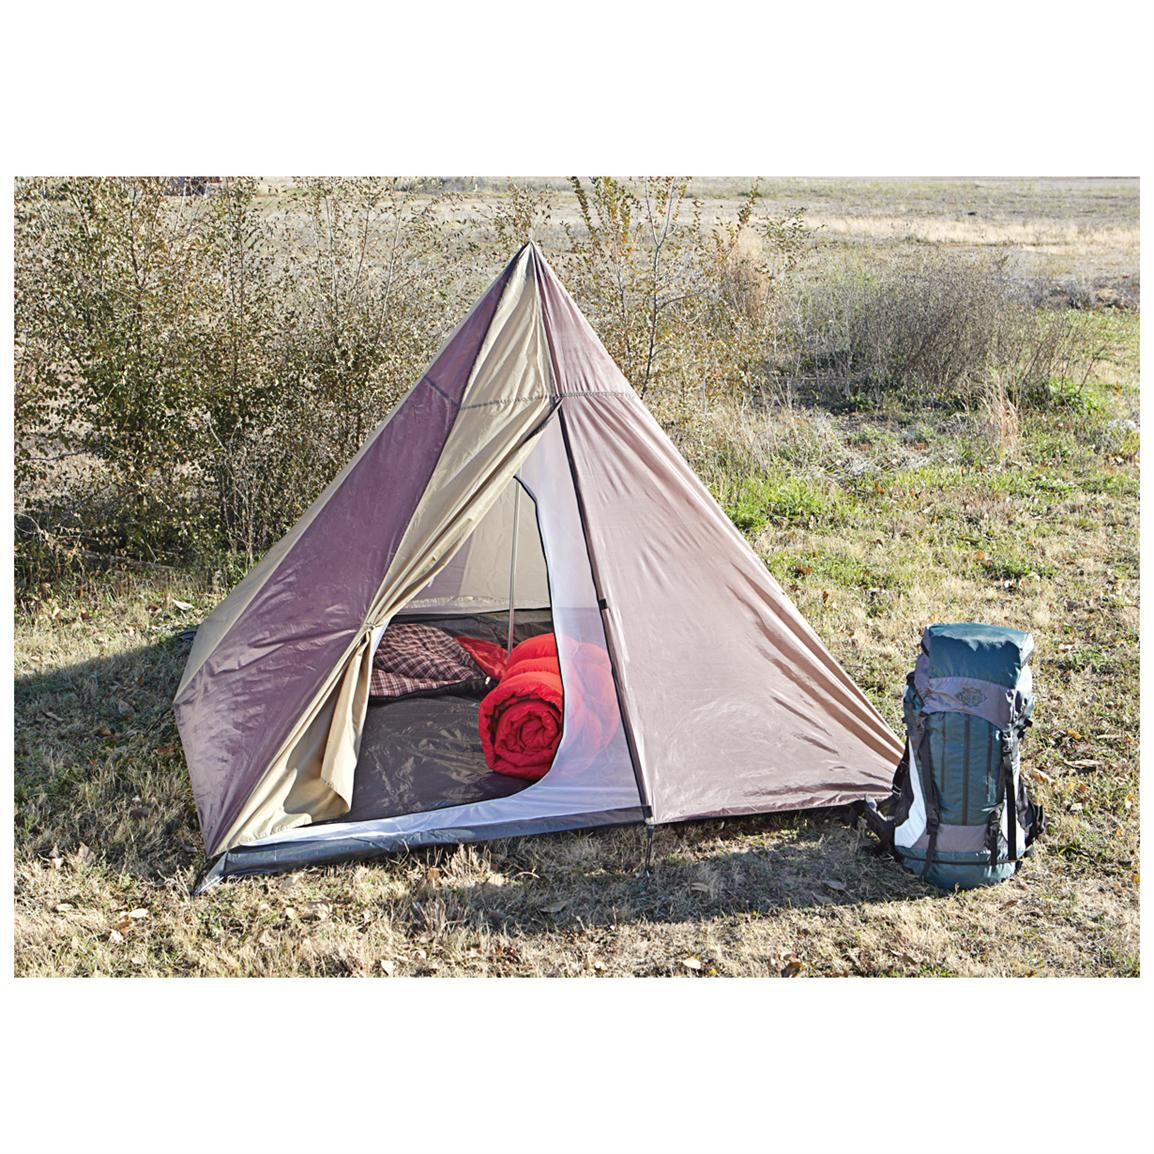 Guide Gear Backpacking Teepee Tent - 582128 Backpacking Tents at Sportsmanu0027s Guide  sc 1 st  Pinterest & Guide Gear Backpacking Teepee Tent - 582128 Backpacking Tents at ...